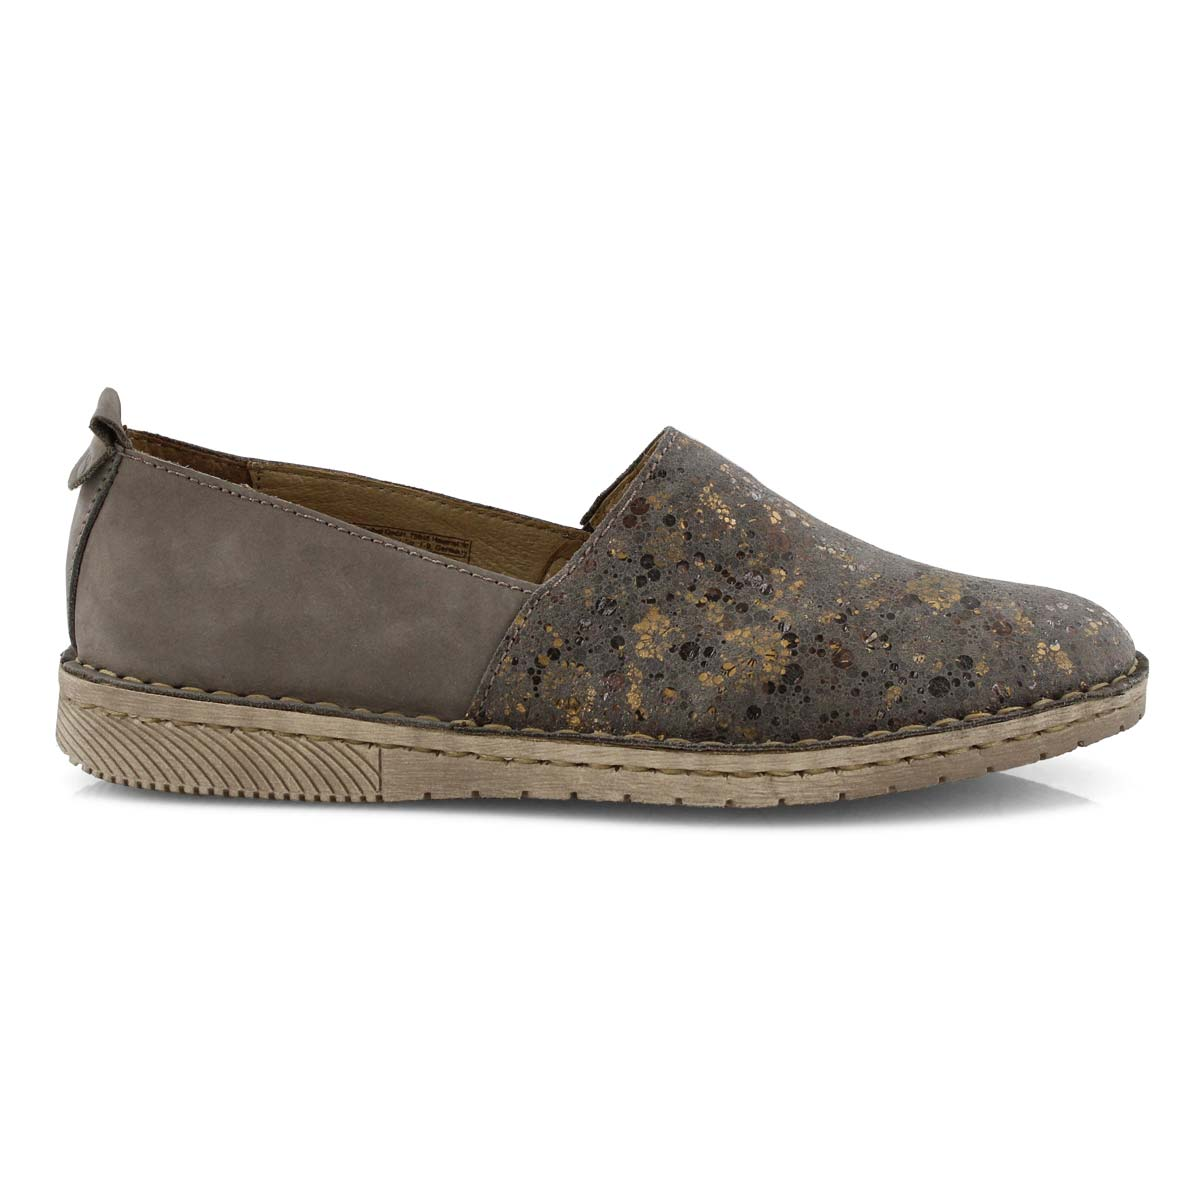 Lds Sofie 33 taupe slip on shoe